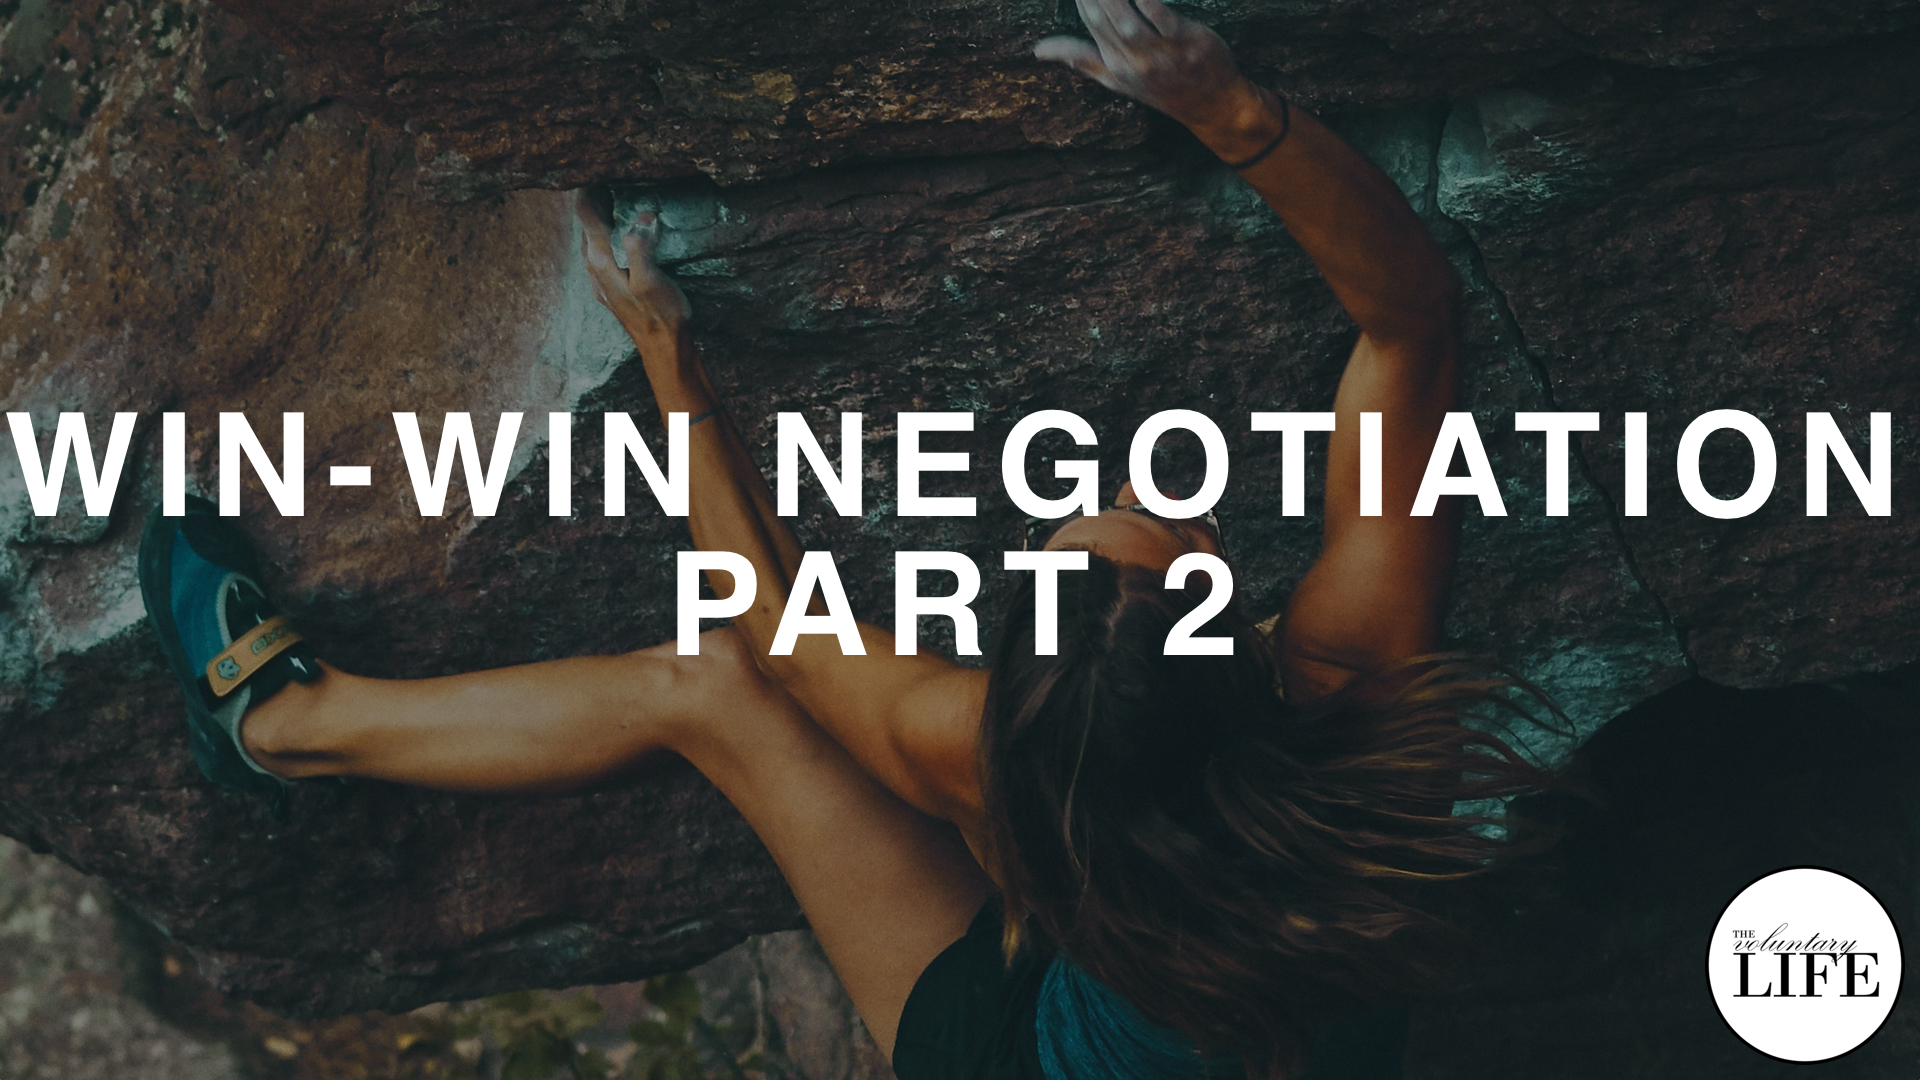 145 Win-Win Negotiation Part 2: Strength and Value